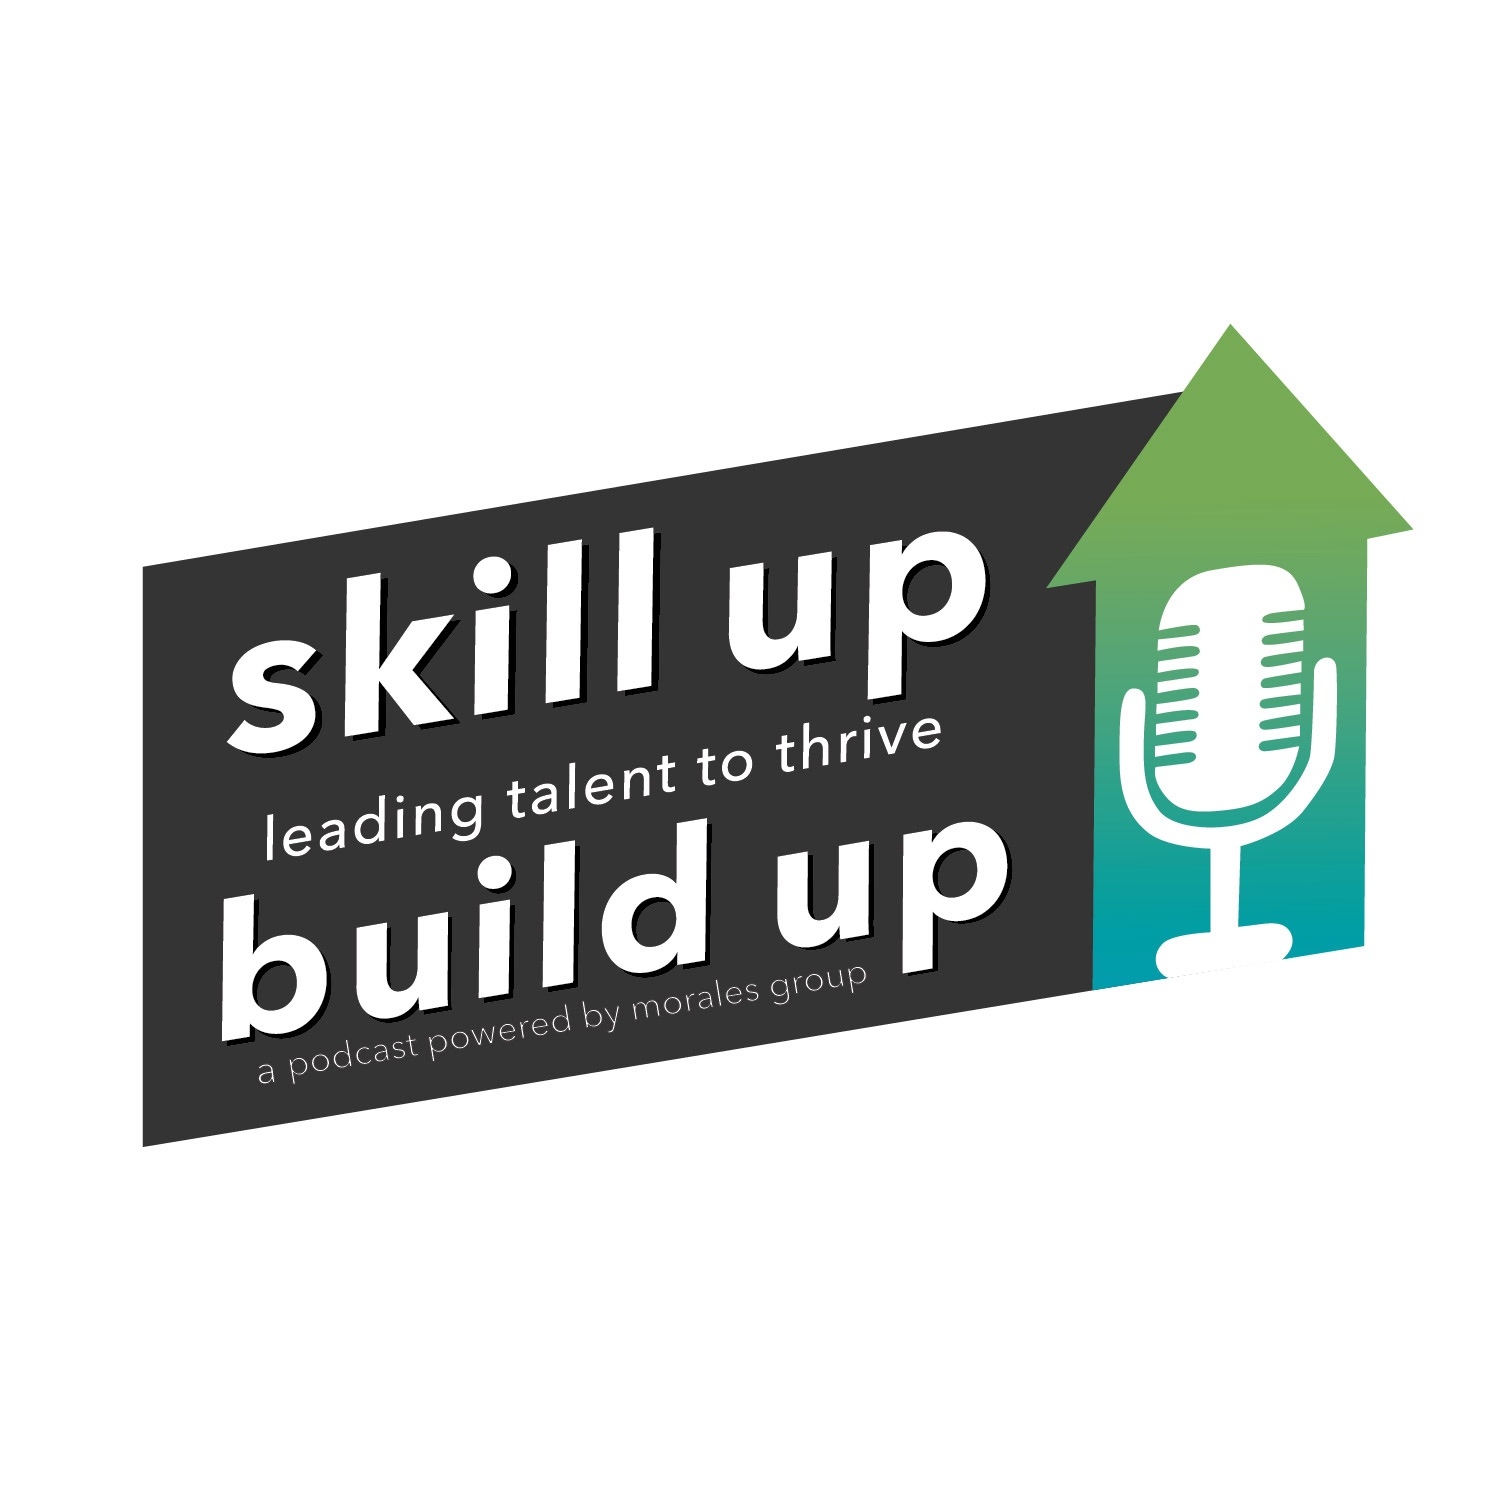 Episode 14: The Changing Nature of Work